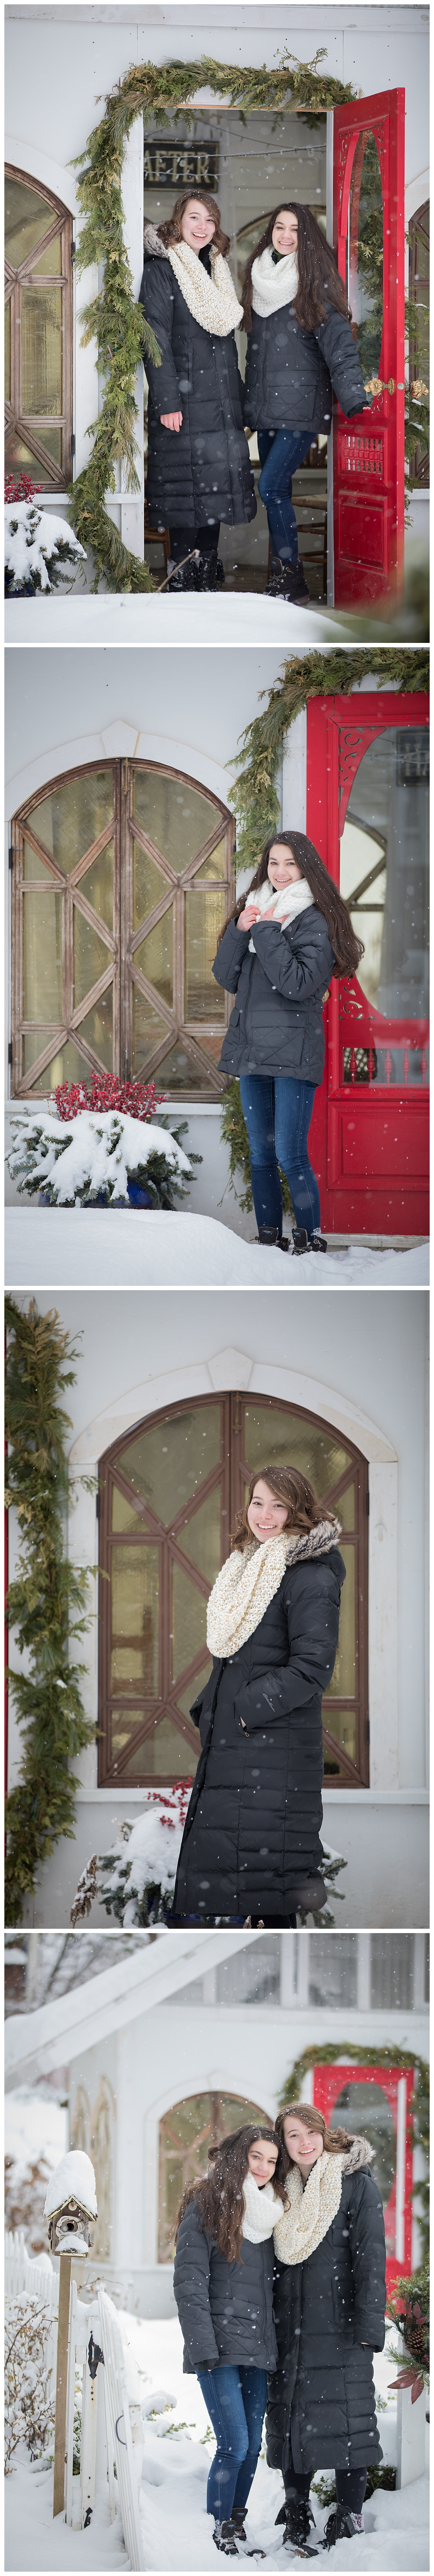 Senior Friends Photo Session at Snowy Cottage